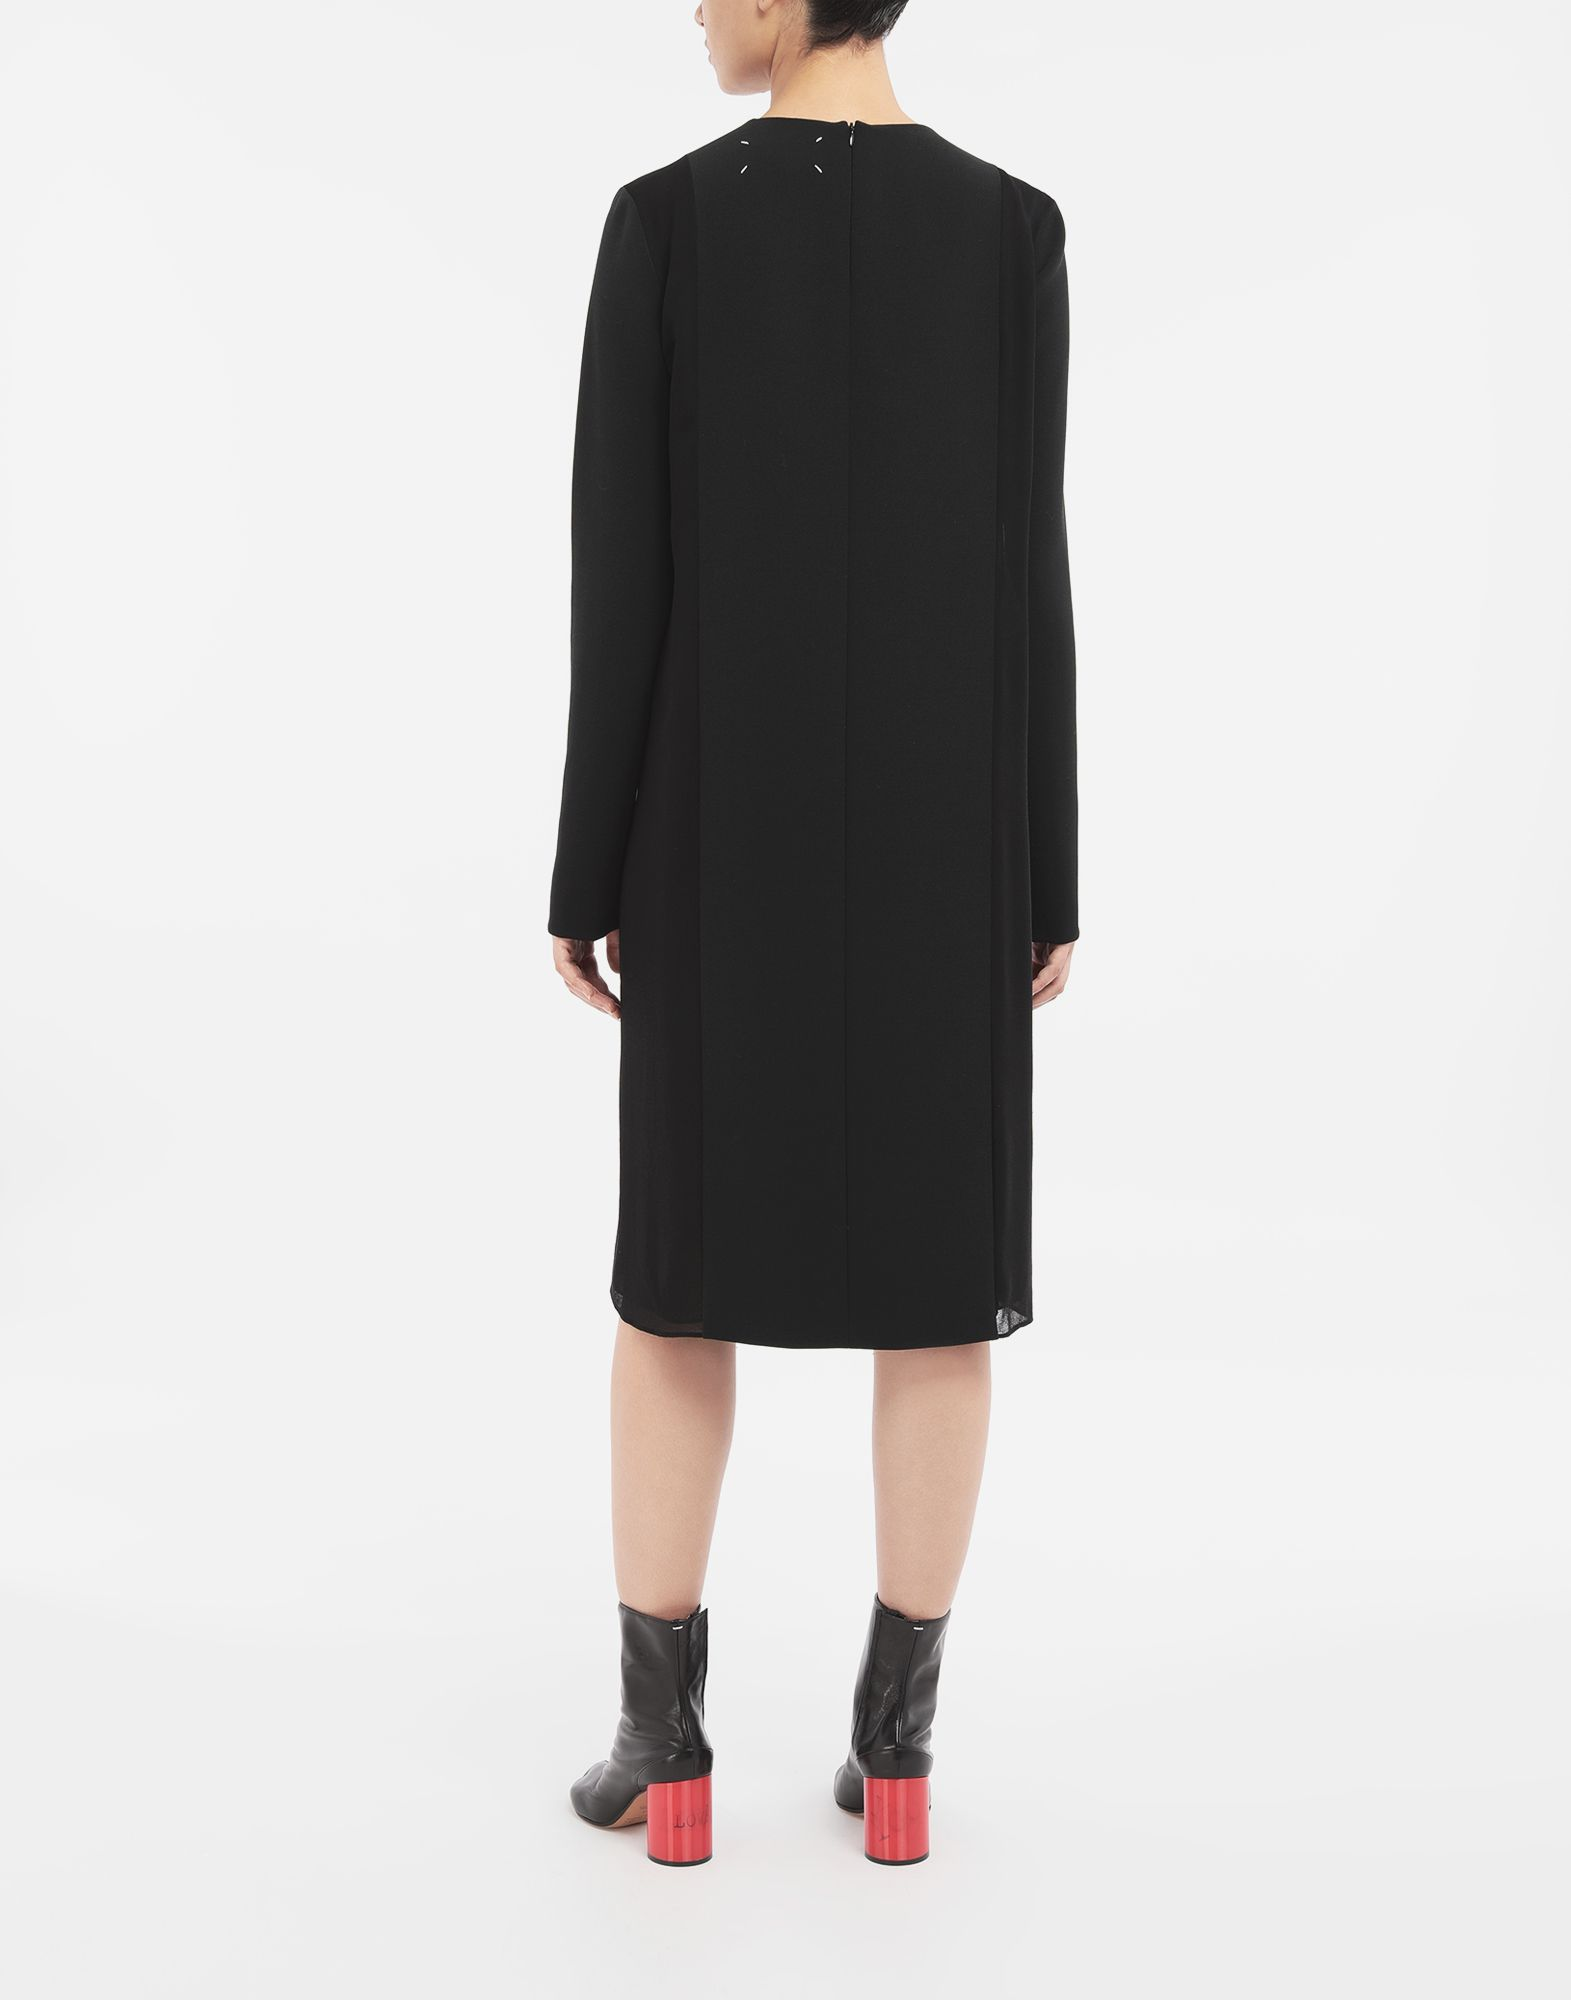 MAISON MARGIELA Spliced dress 3/4 length dress Woman e